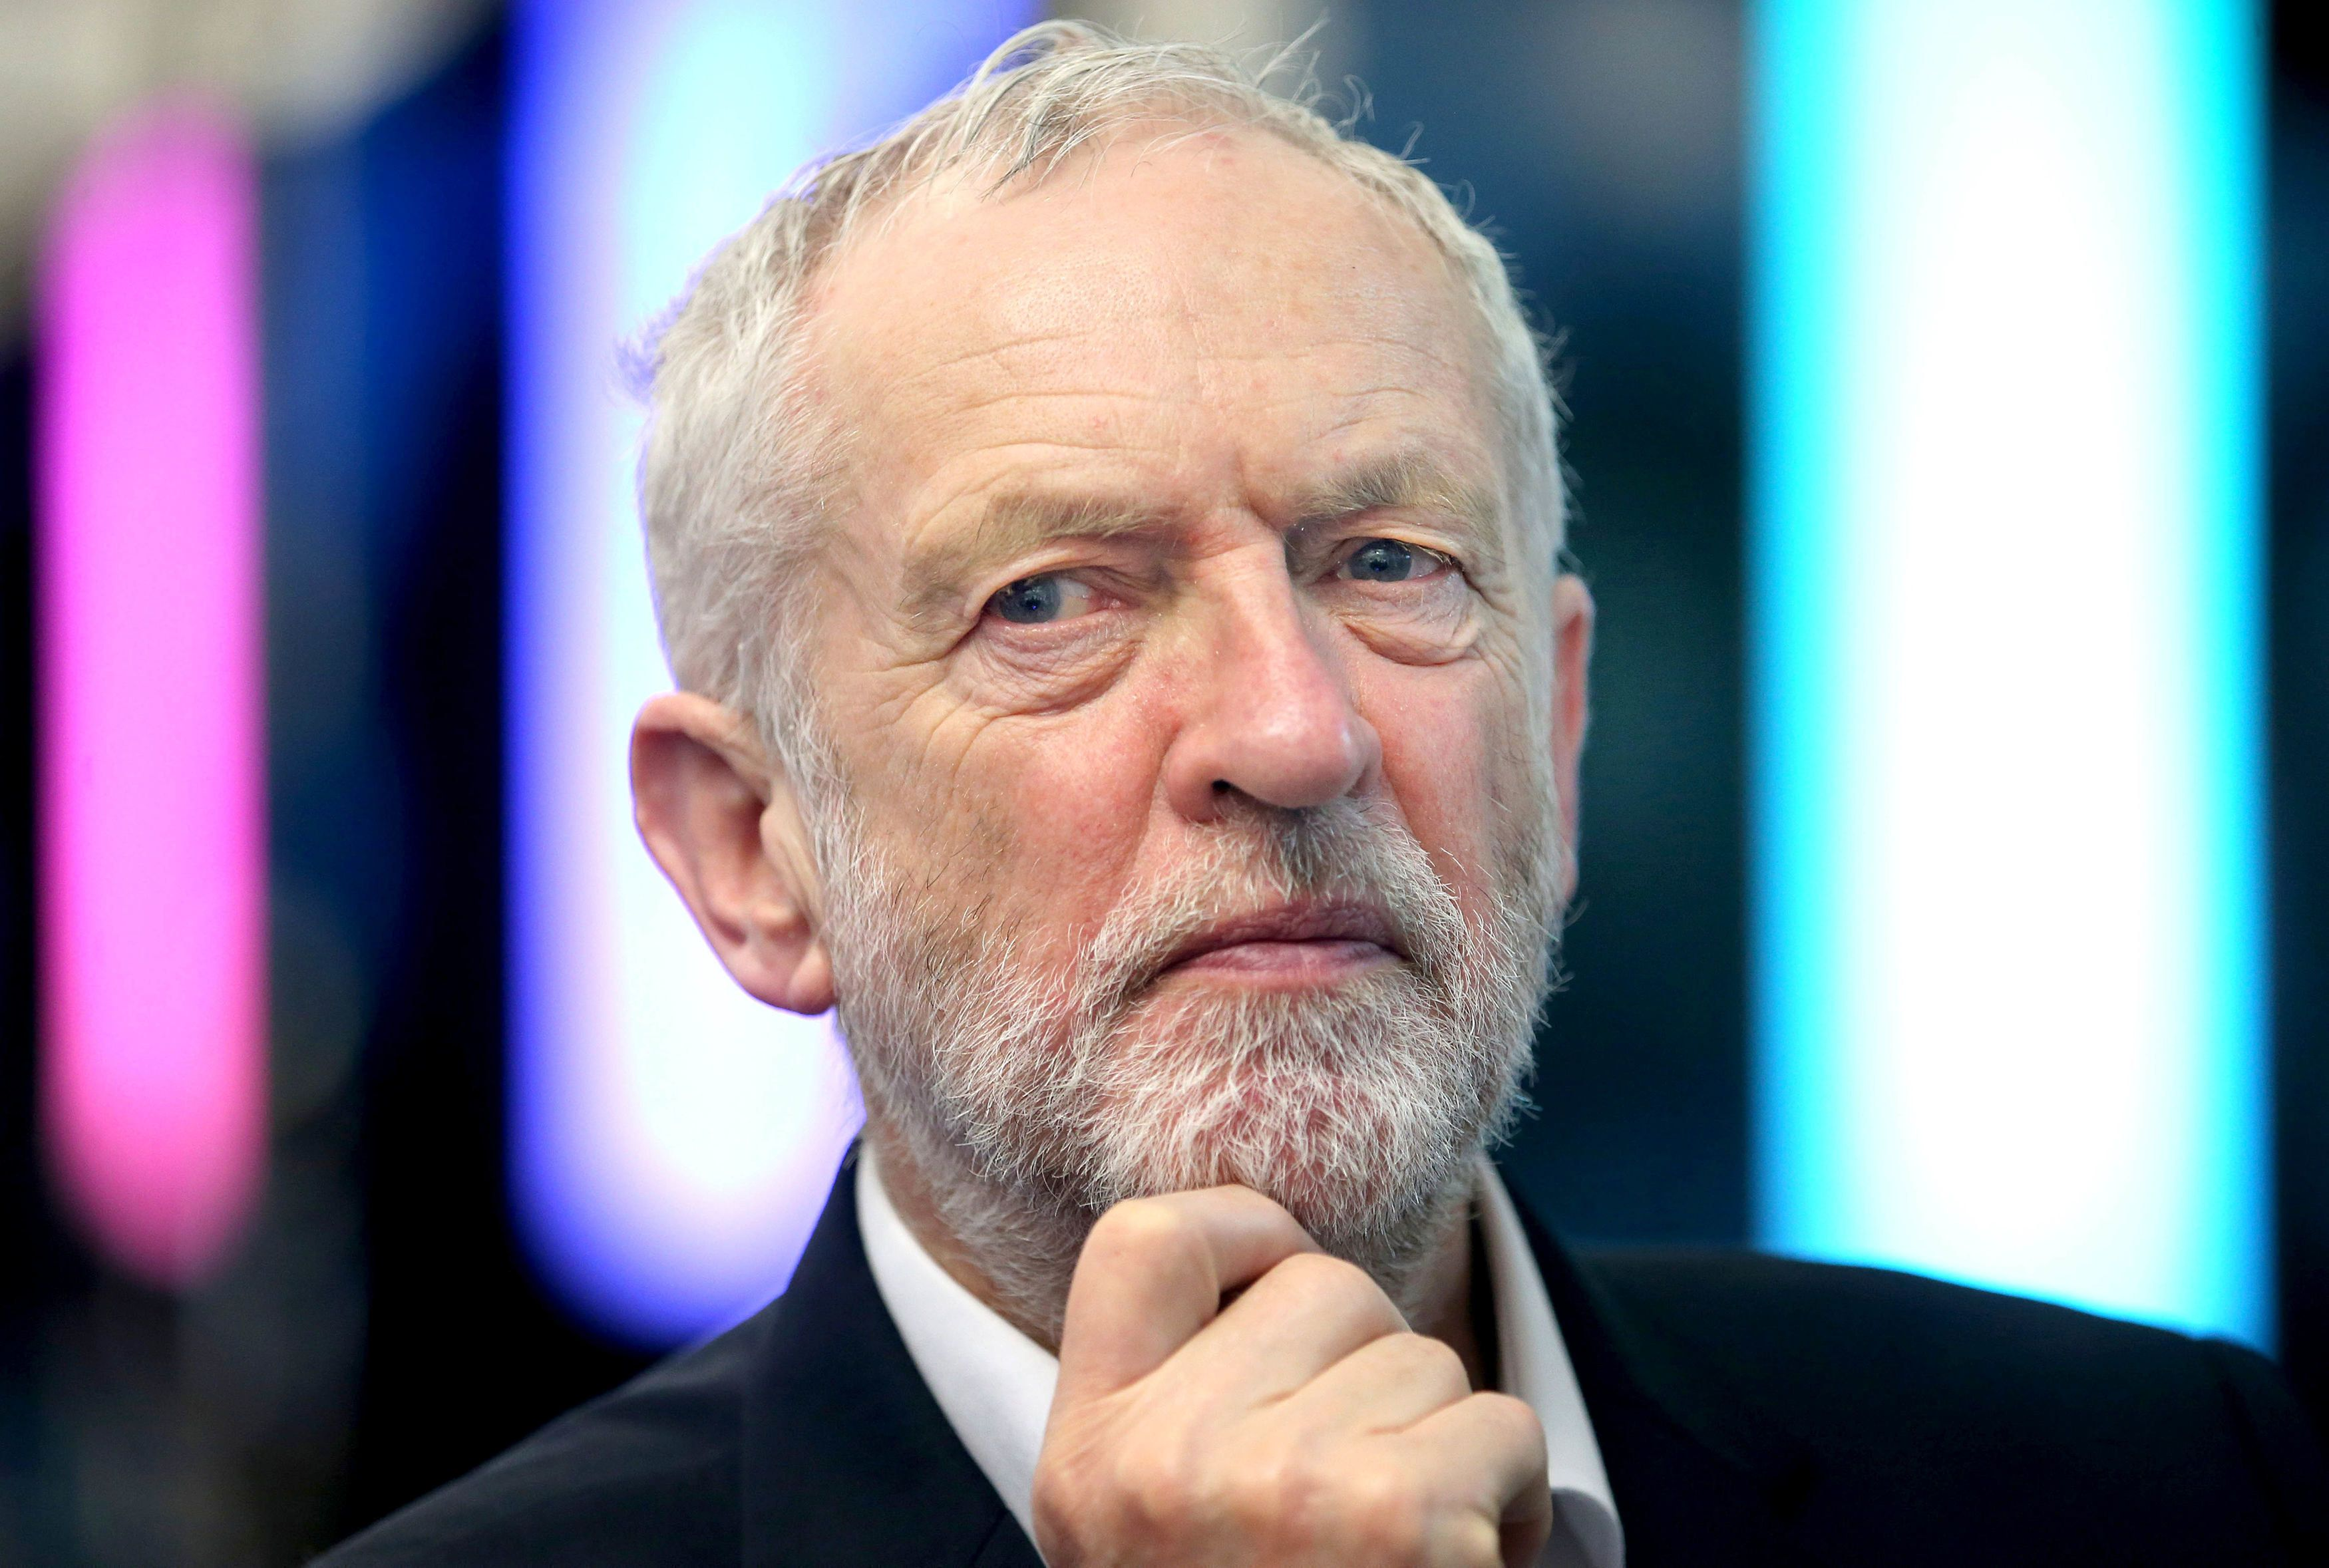 Corbyn's Declaration That Anti-Semites Have 'No Place' In Labour Party Dismissed As